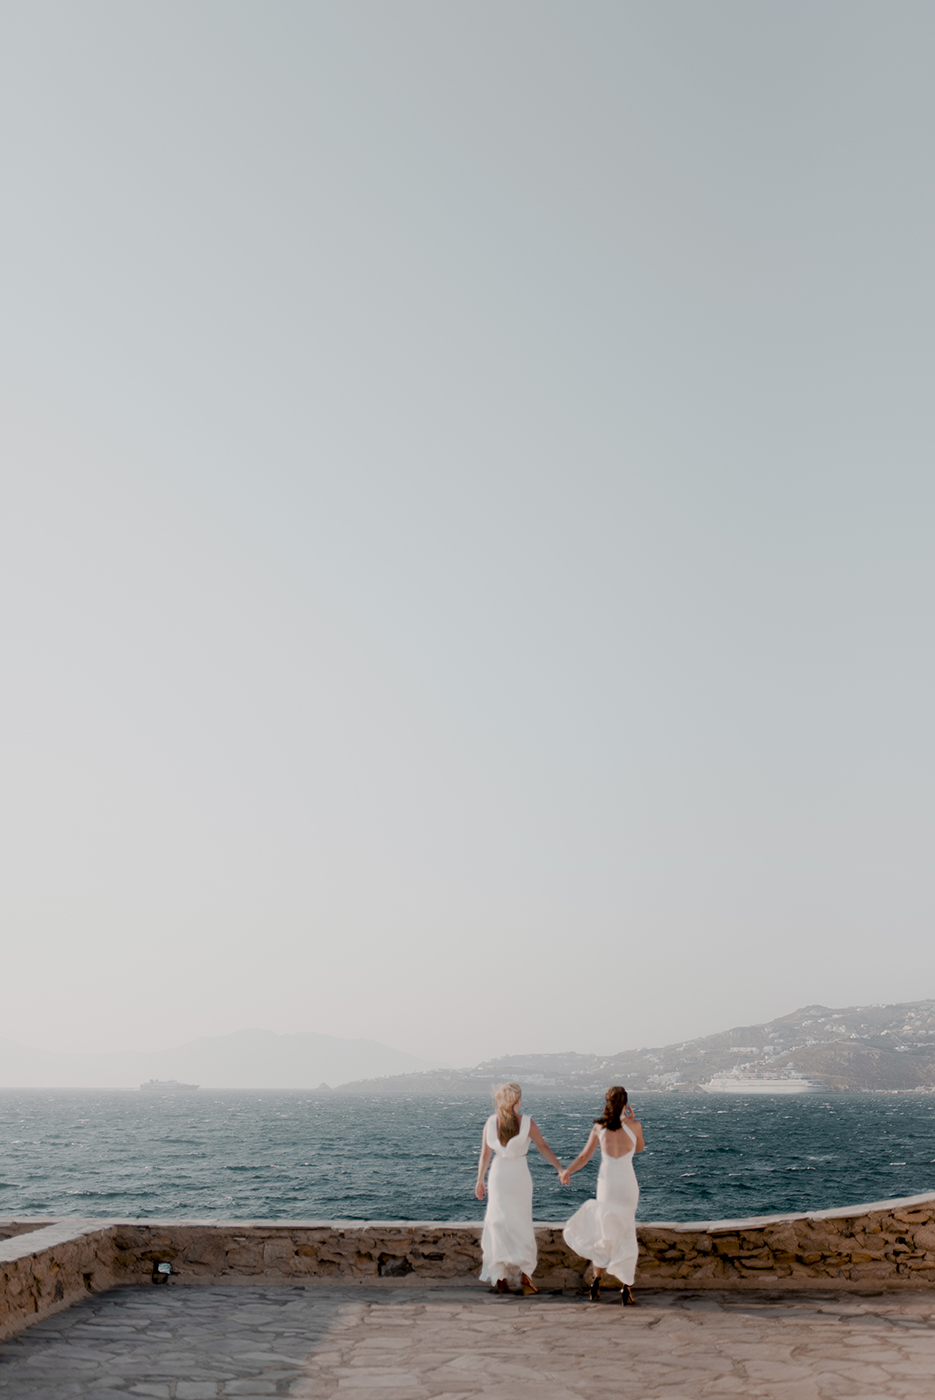 Kirill-Samarits-Wedding-Photography-Greece-AThens-Mykonos-Santorini-Same-Sex-Wedding-Photographer-Candice-Mykonos (5)